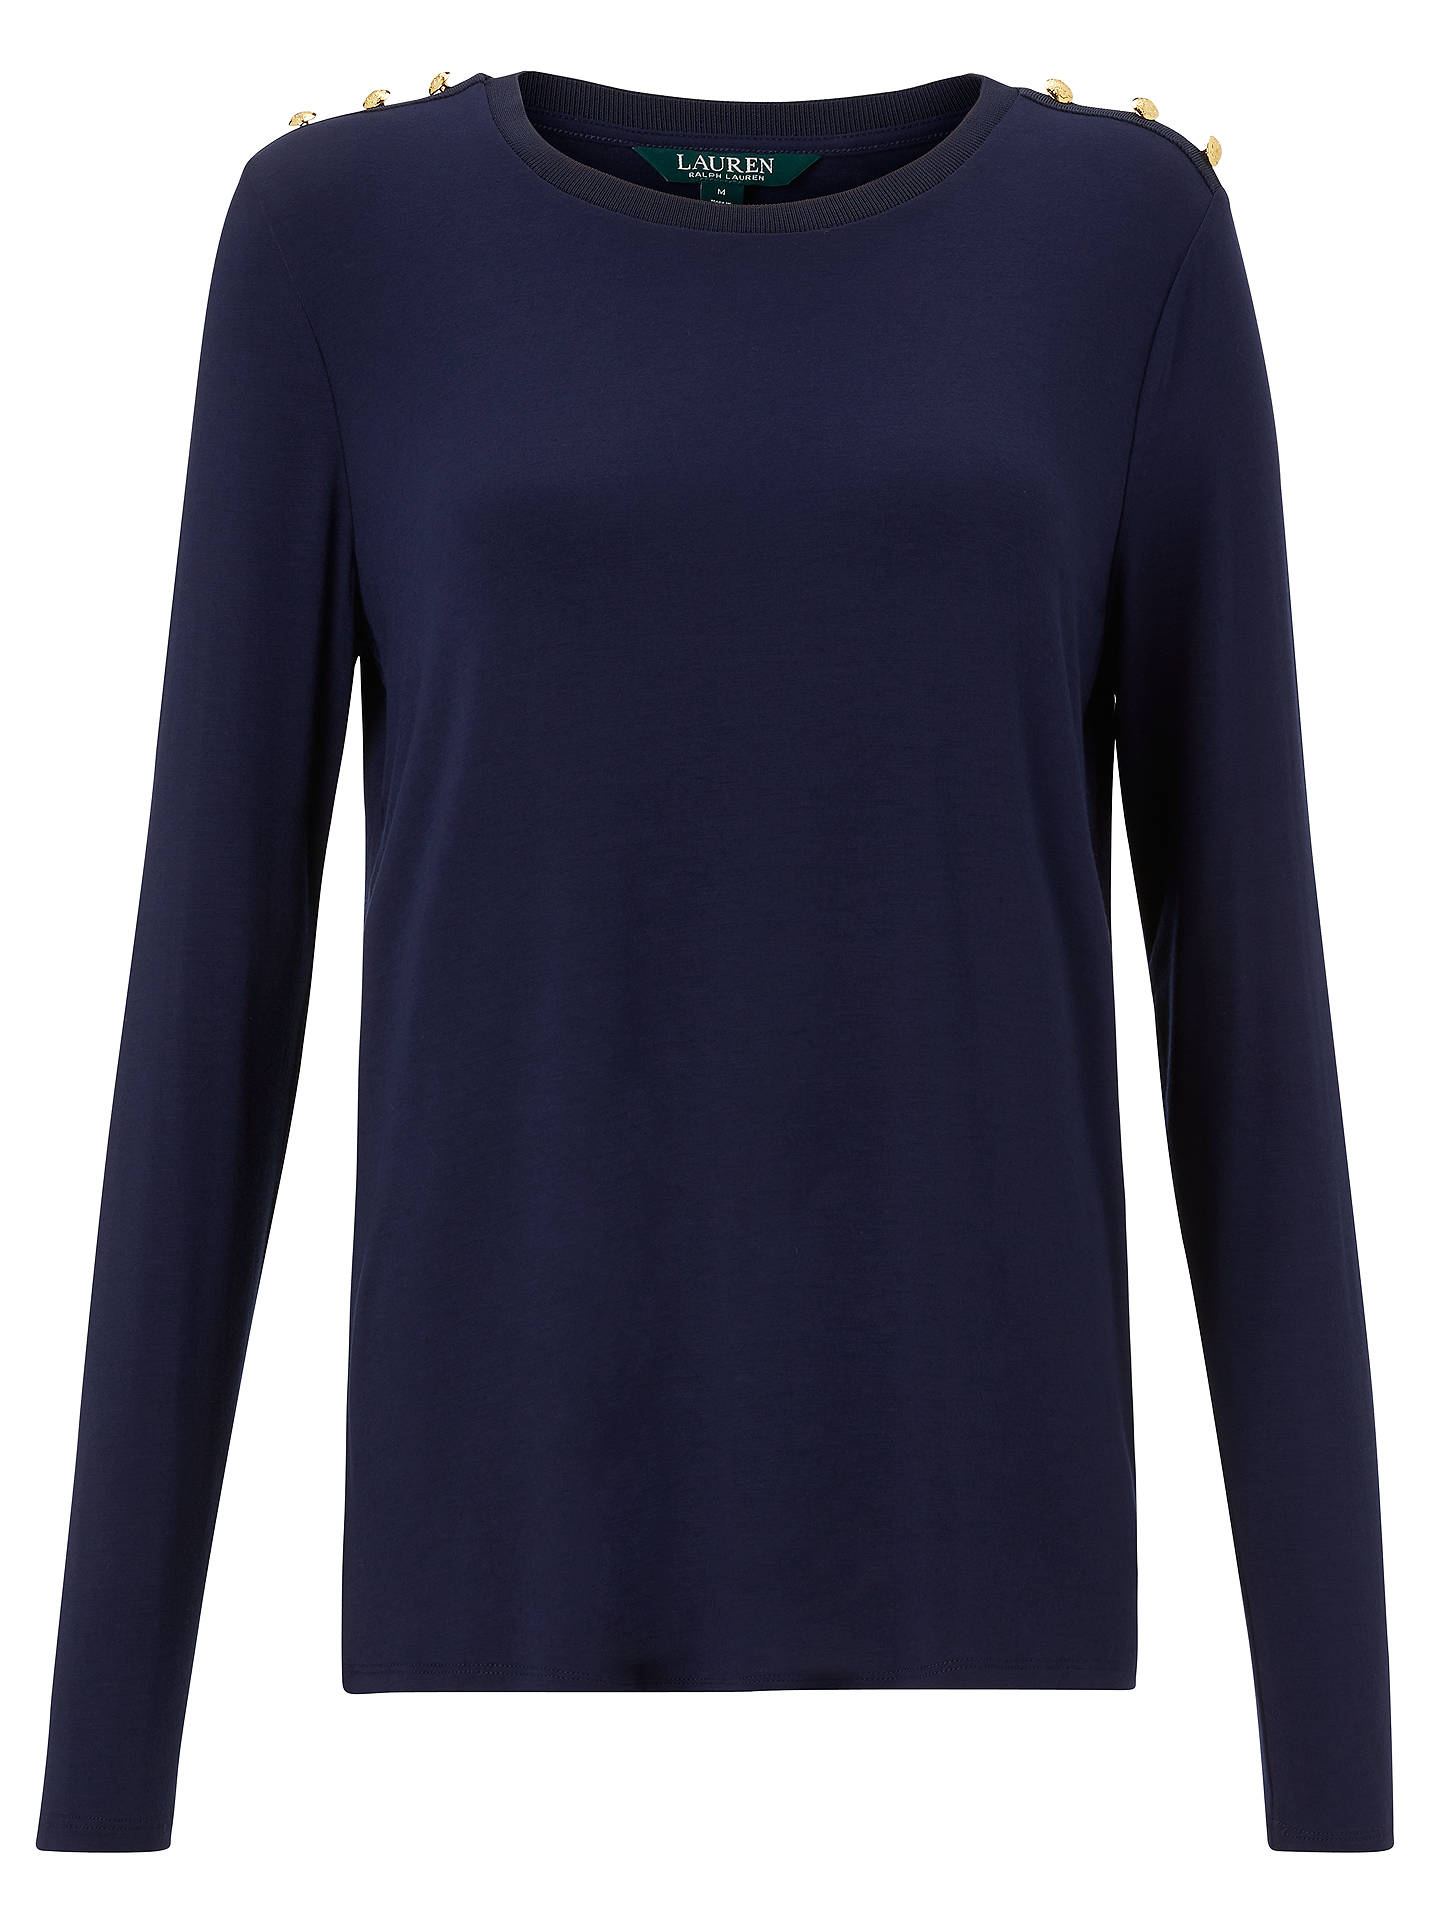 BuyPolo Ralph Lauren Kaizza Button Shoulder Top, Navy, XS Online at johnlewis.com